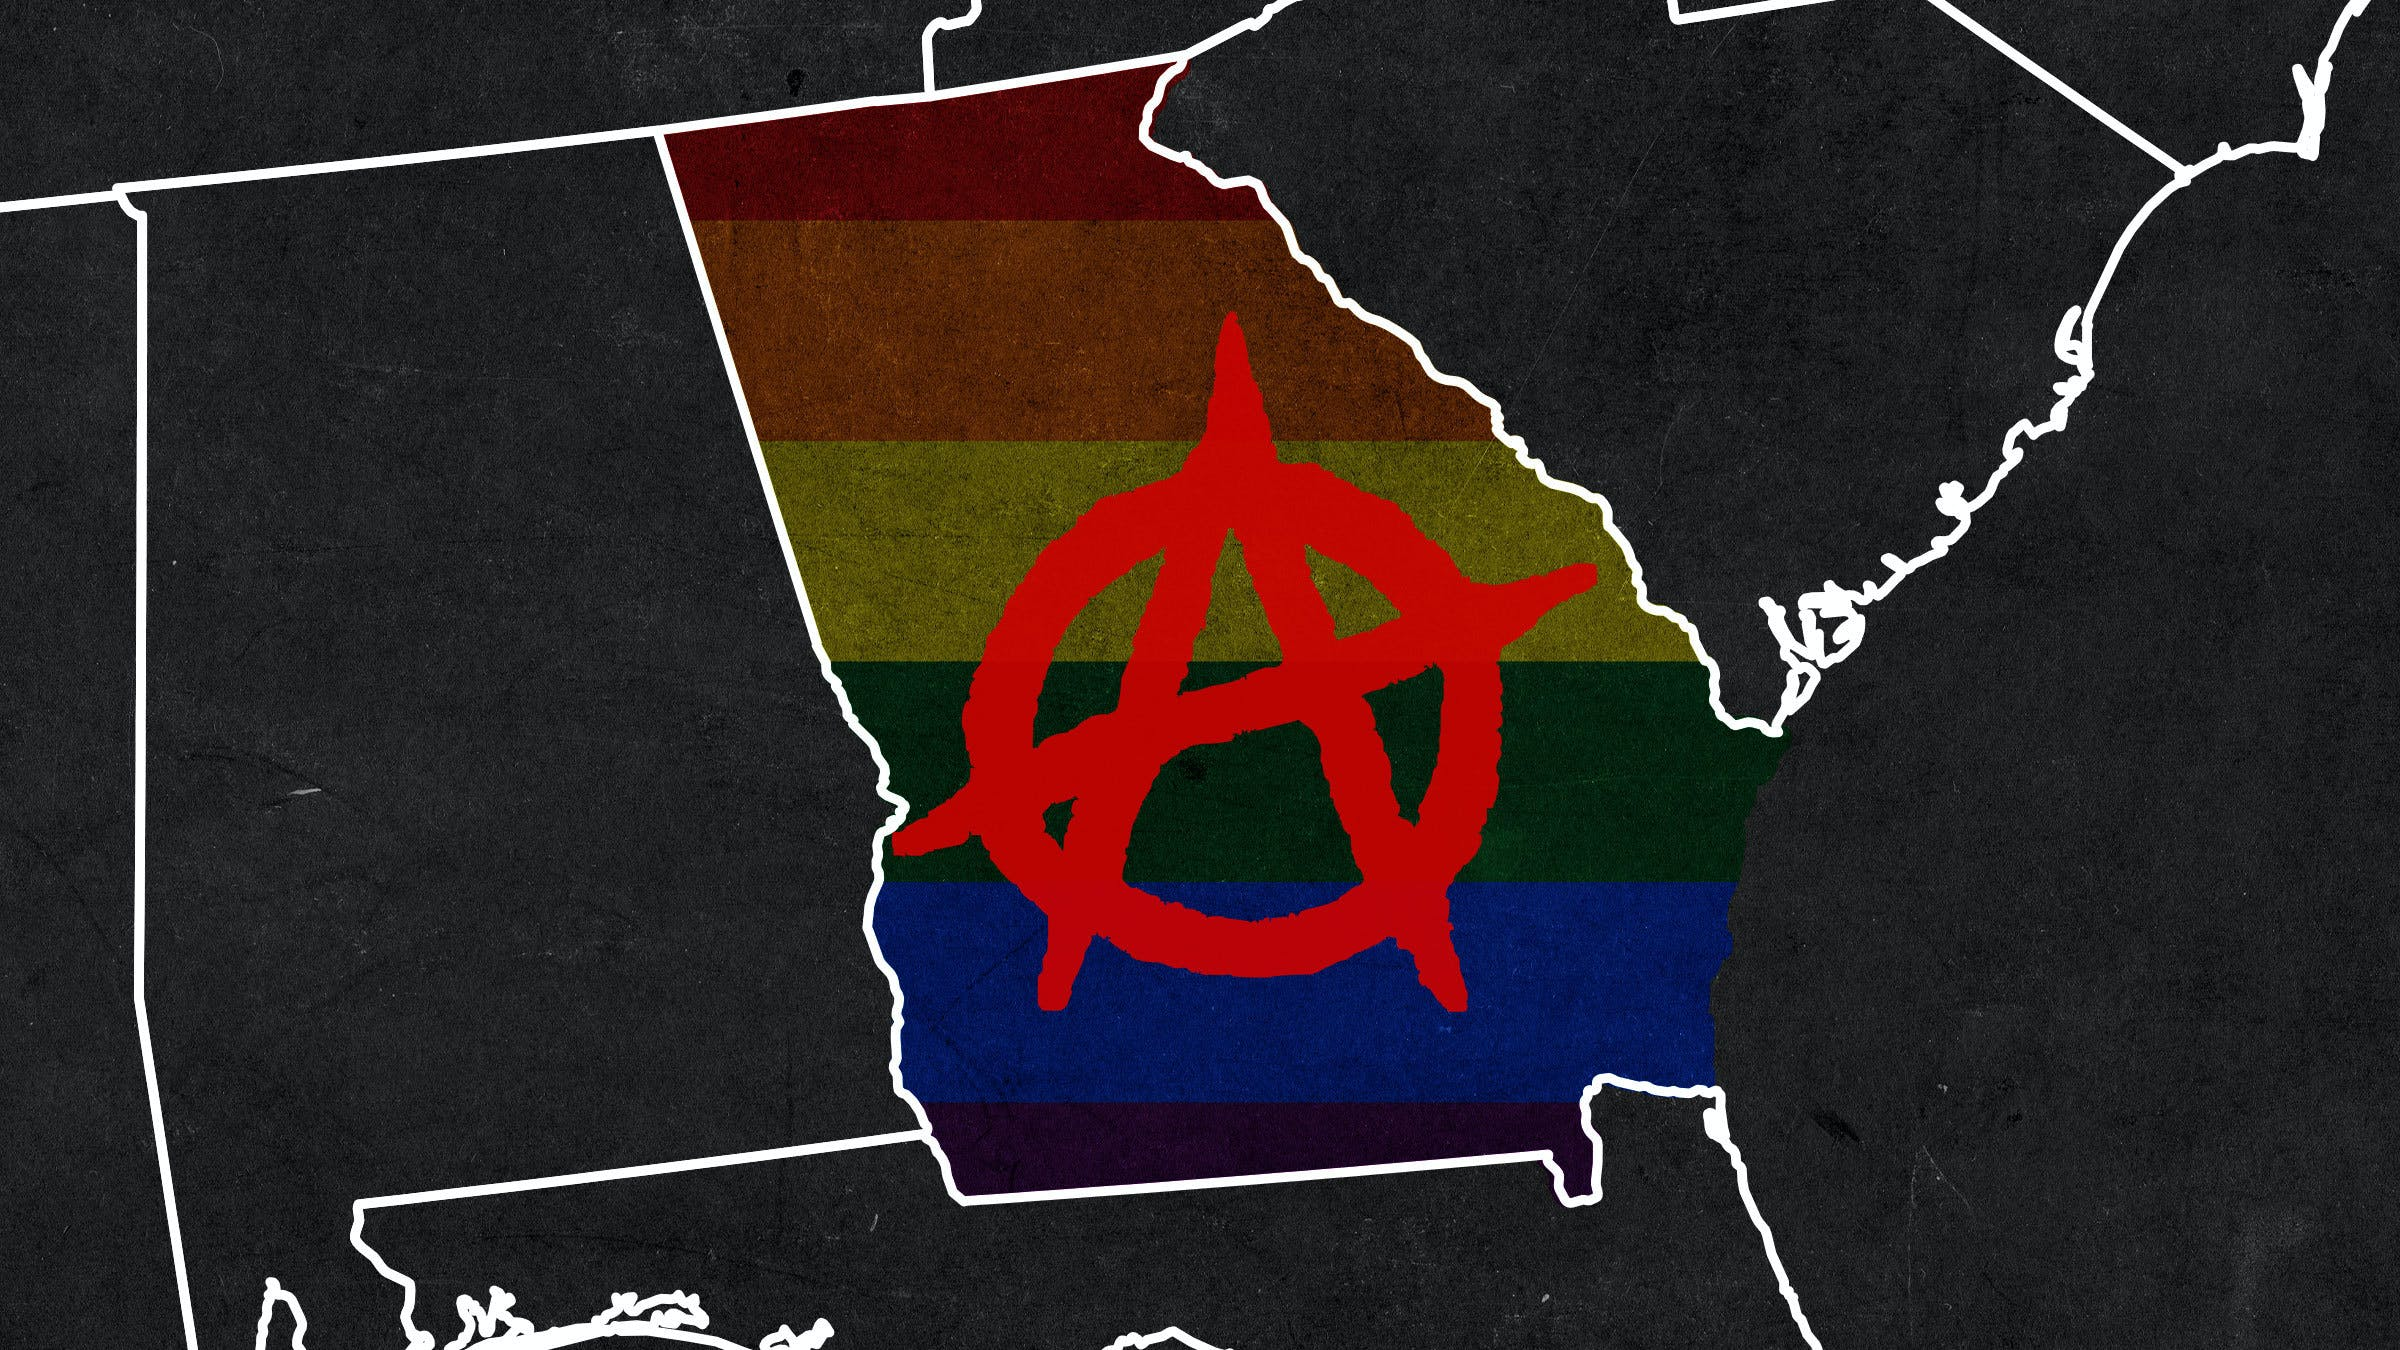 The Queer Punk Scene Is Defiantly Thriving In The American South